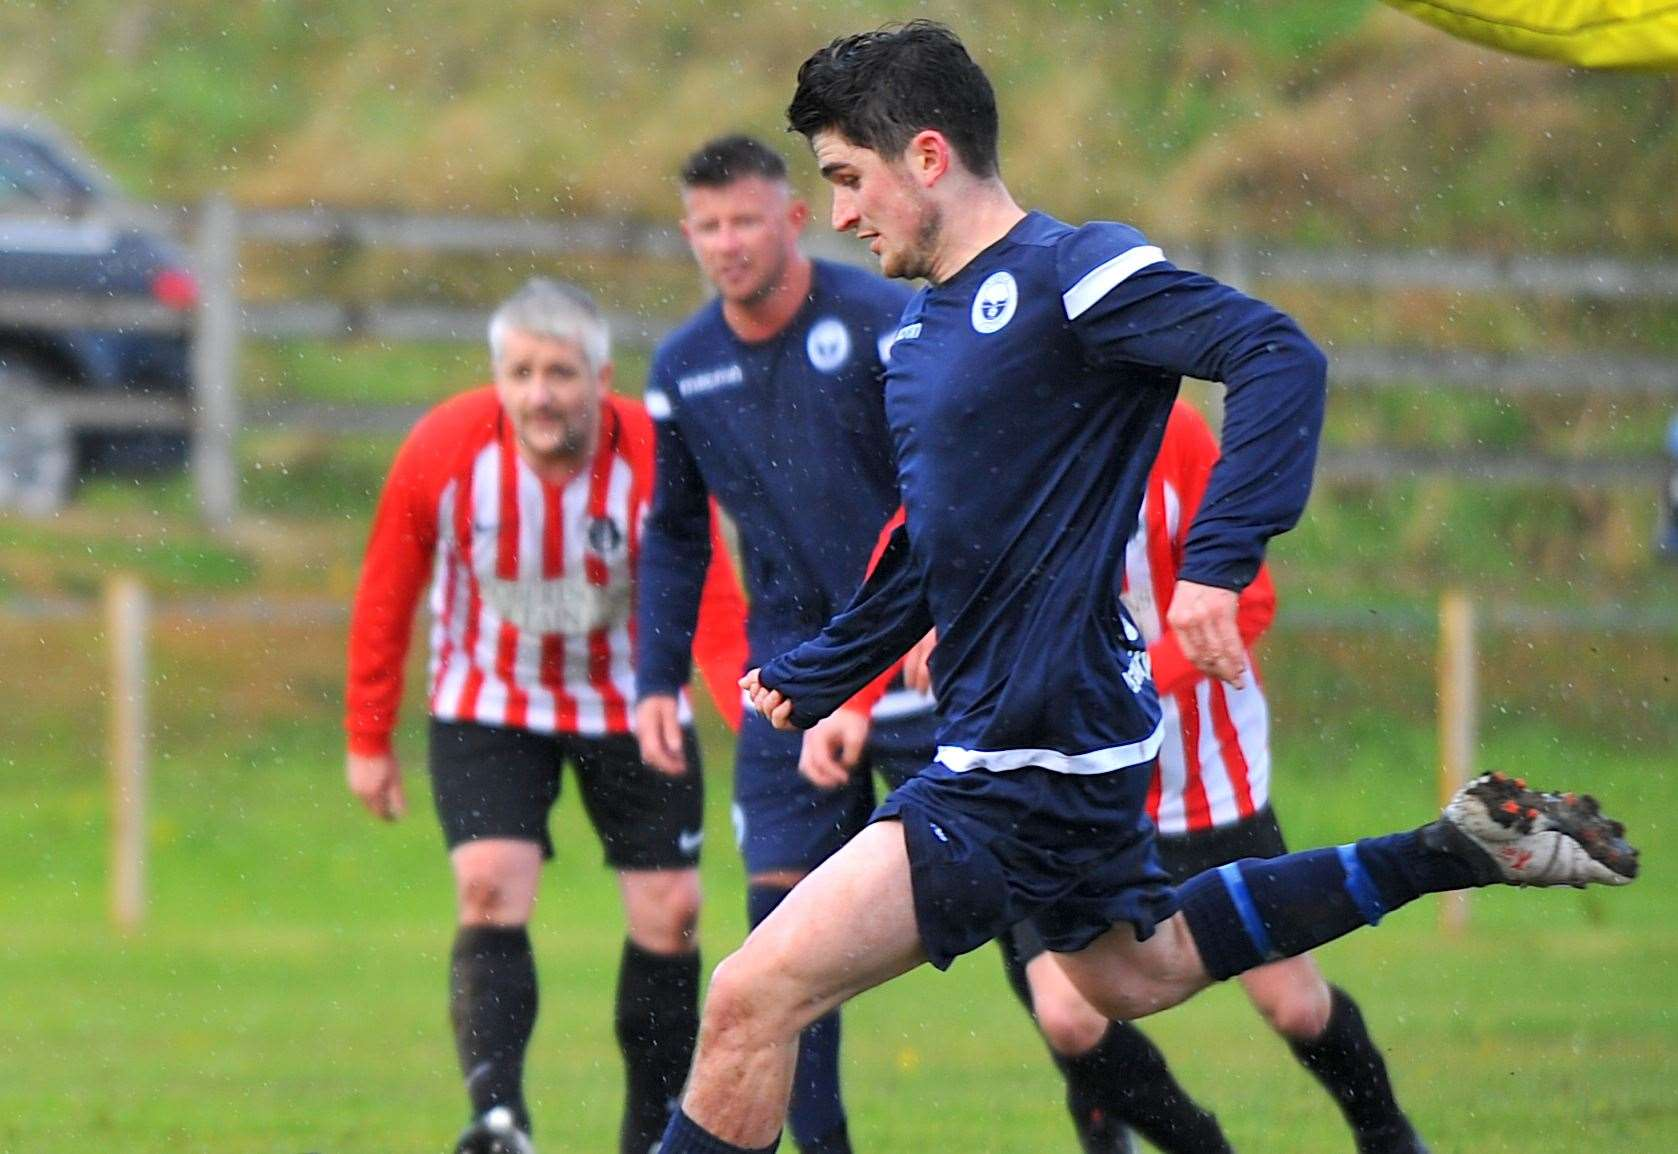 Inverness Athletic suffer defeat in Orkney